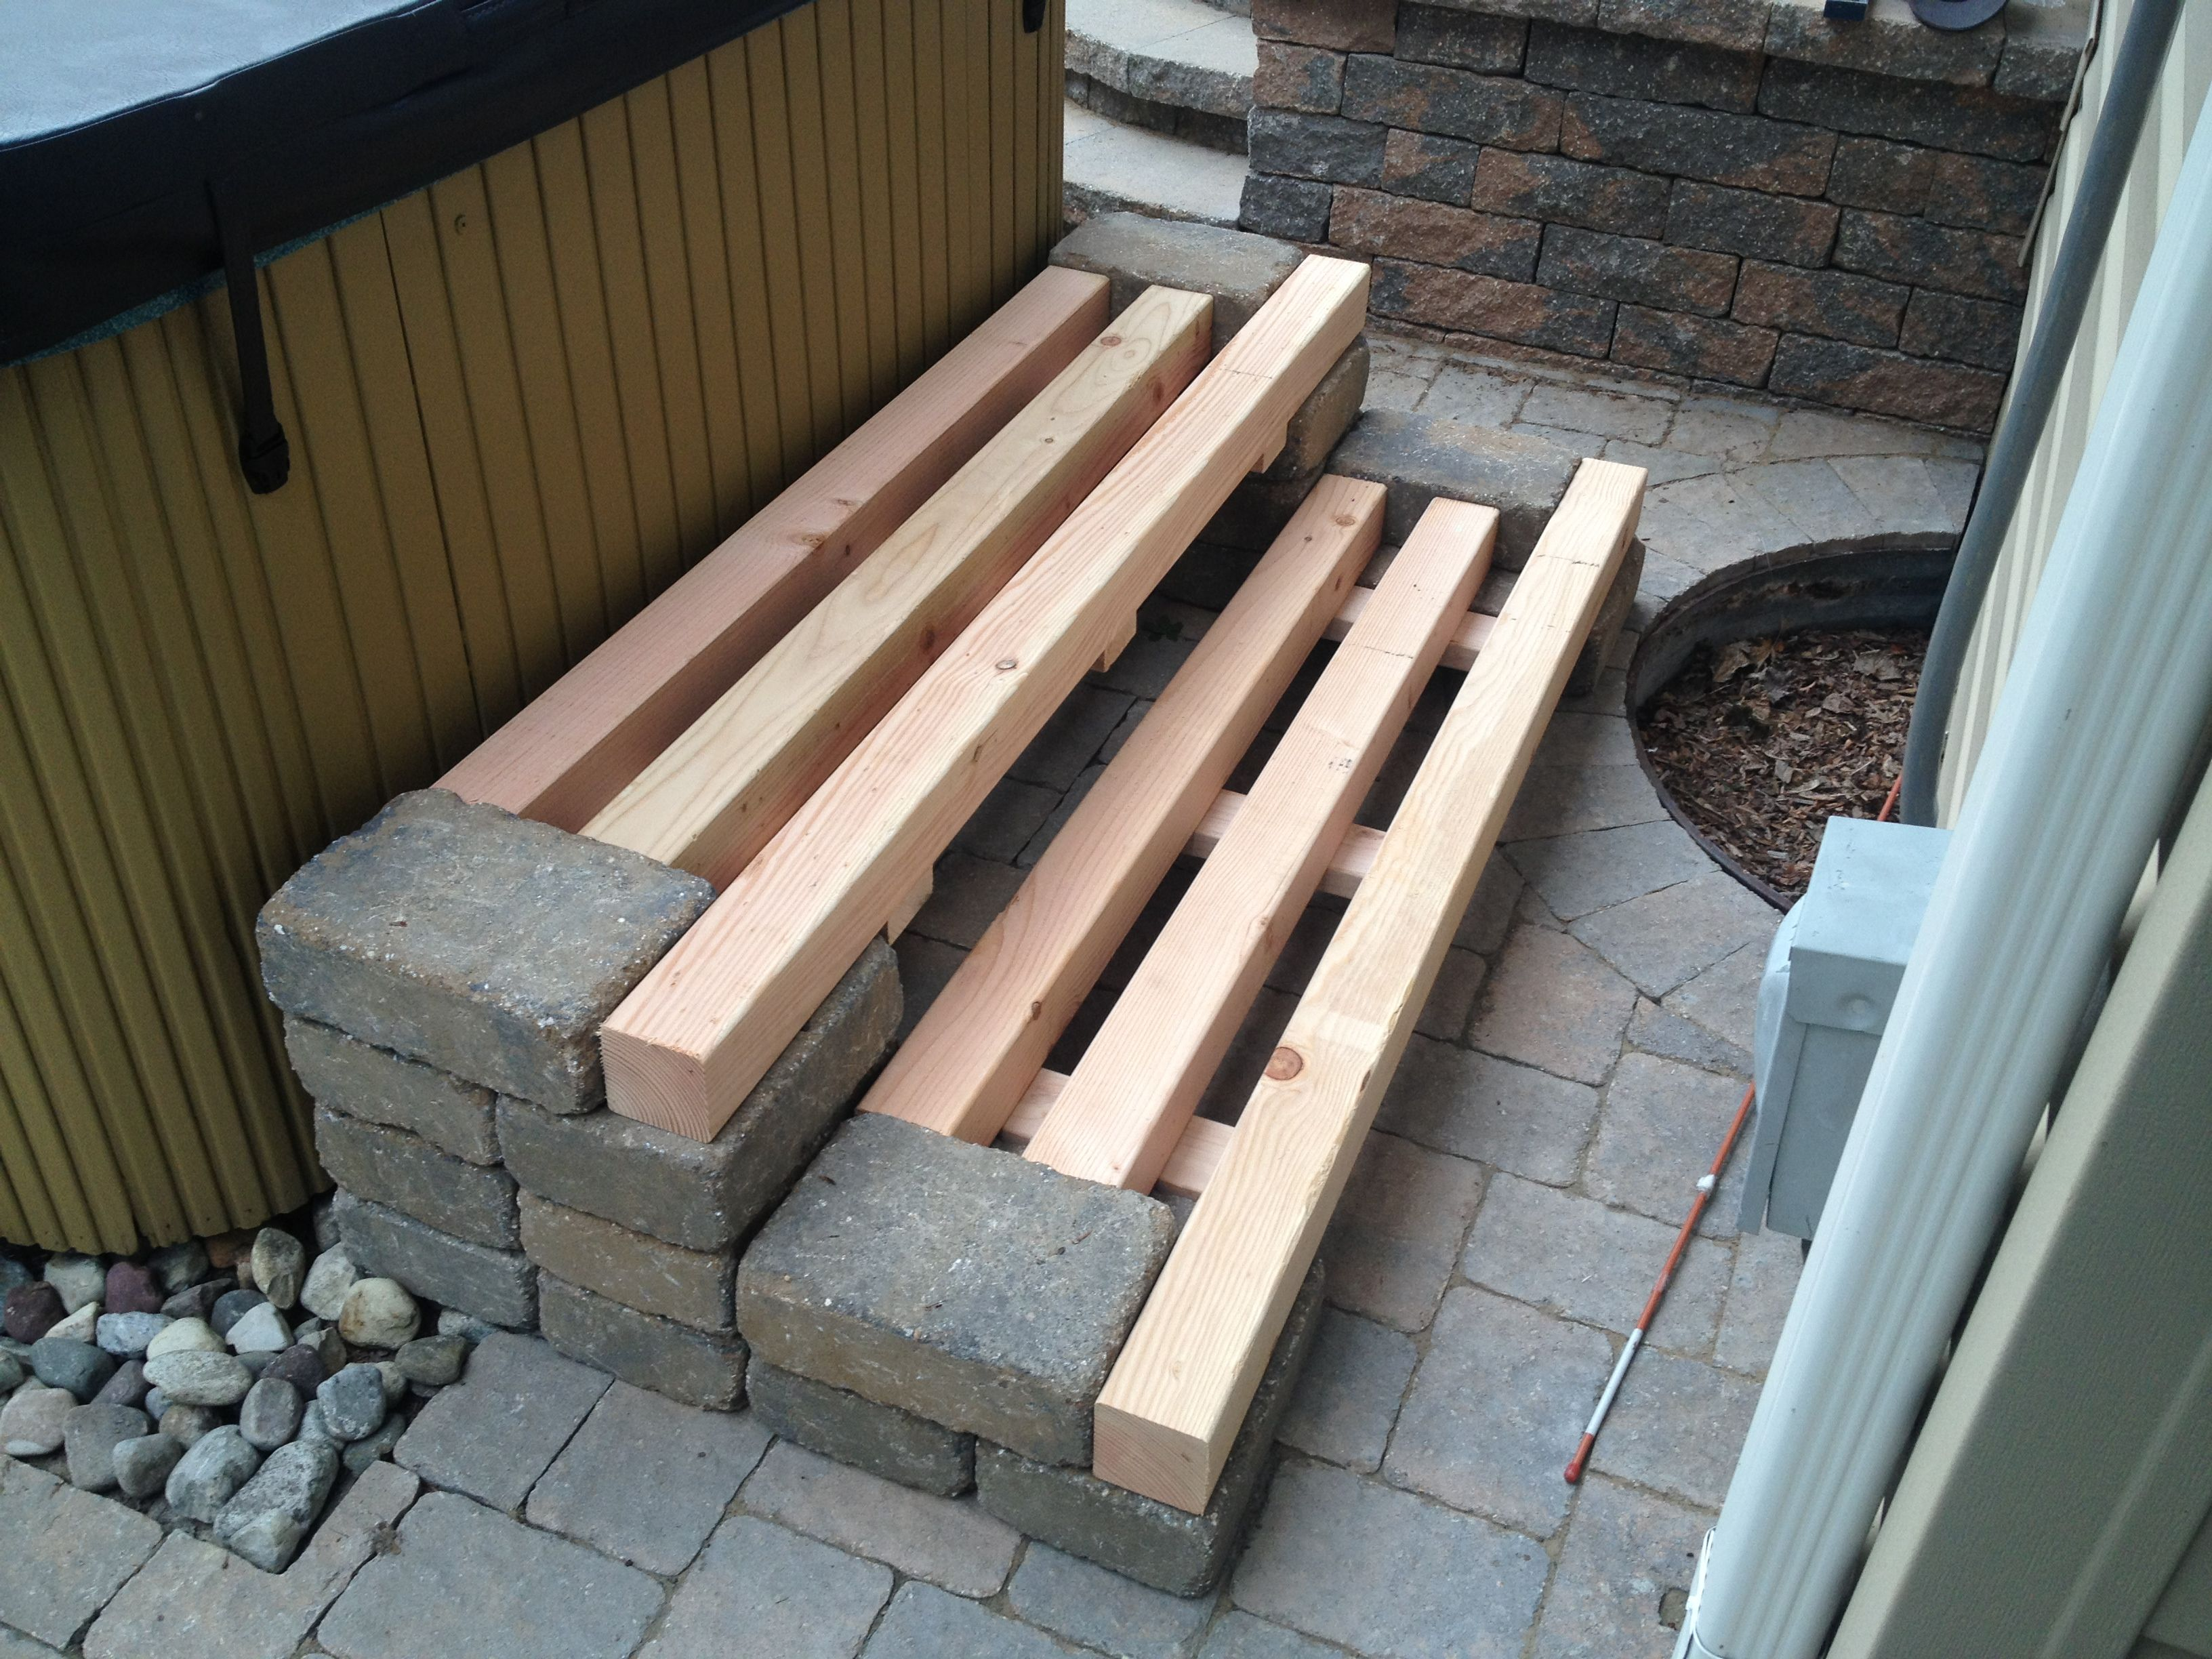 Wooden Steps Patio Block And Wood Removable Steps Design